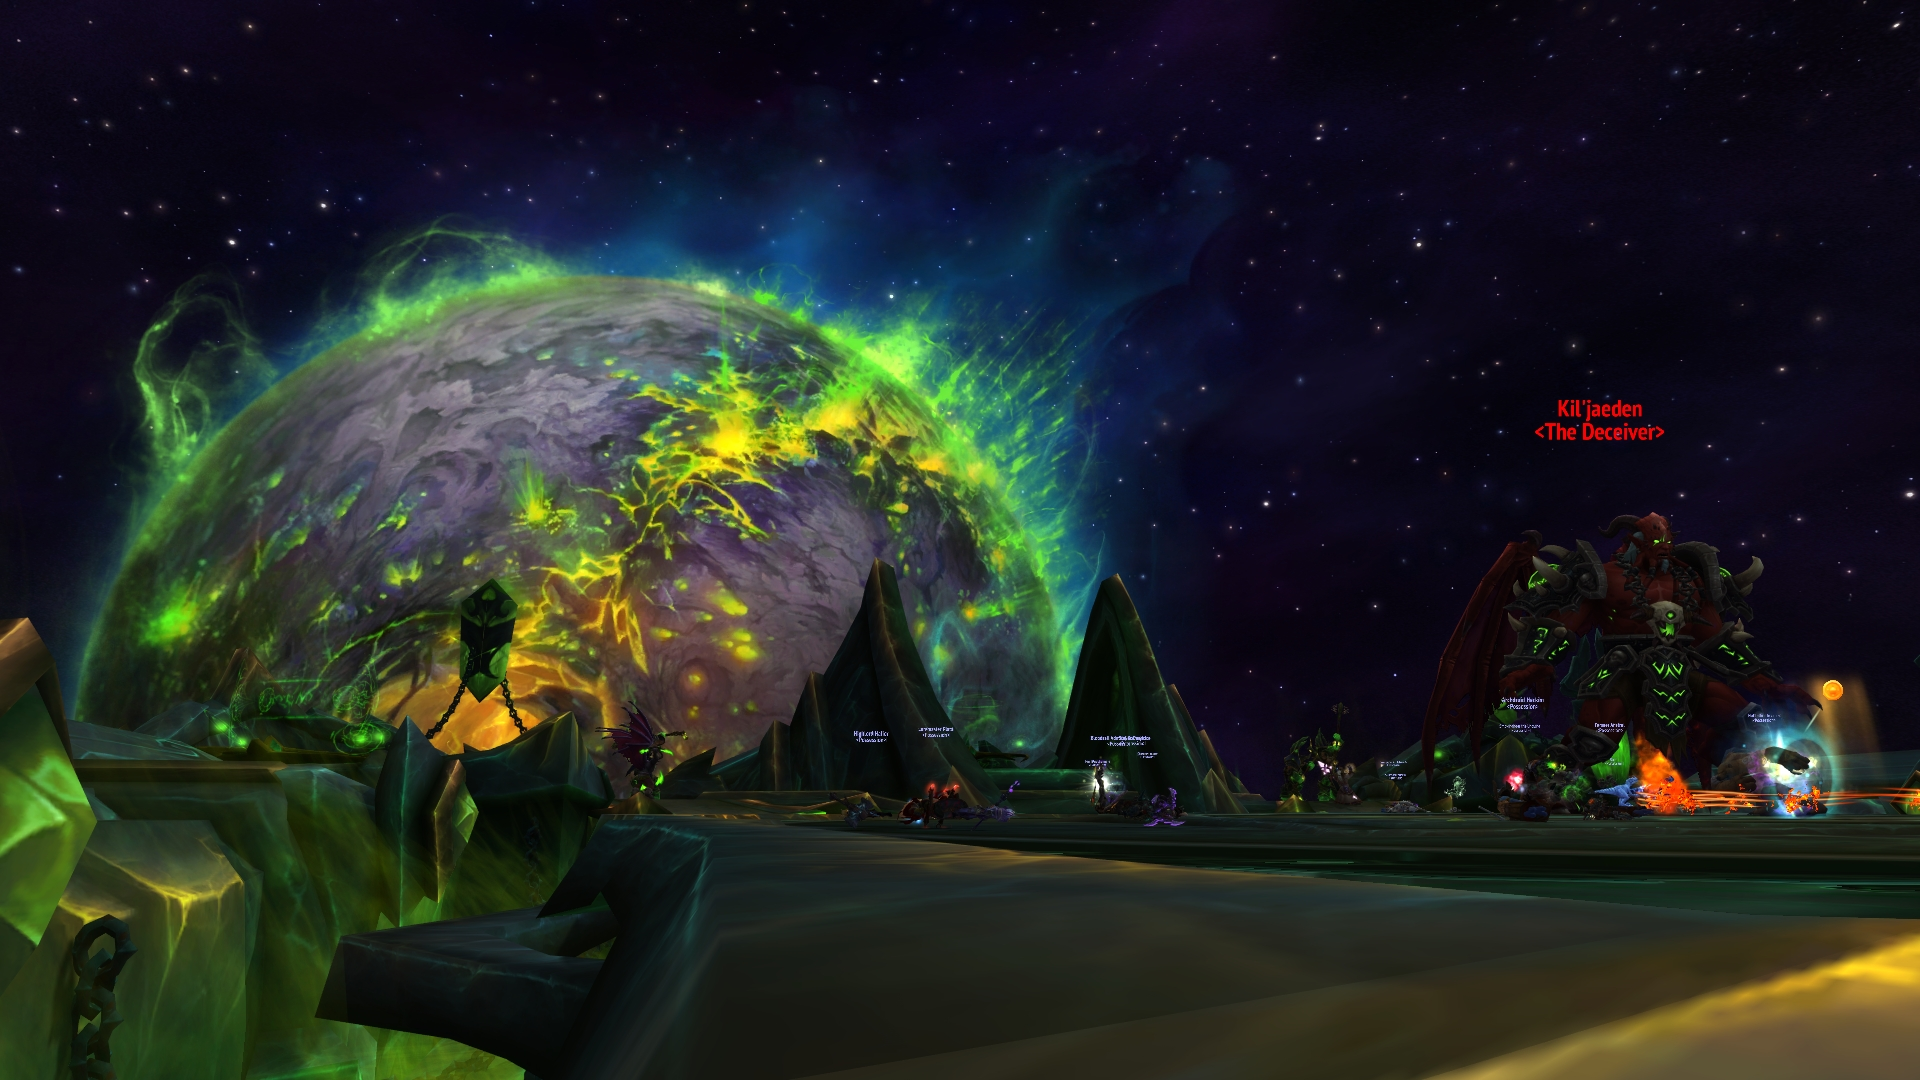 World of Warcraft Engine Updated to Support DX12, Adds 21:9